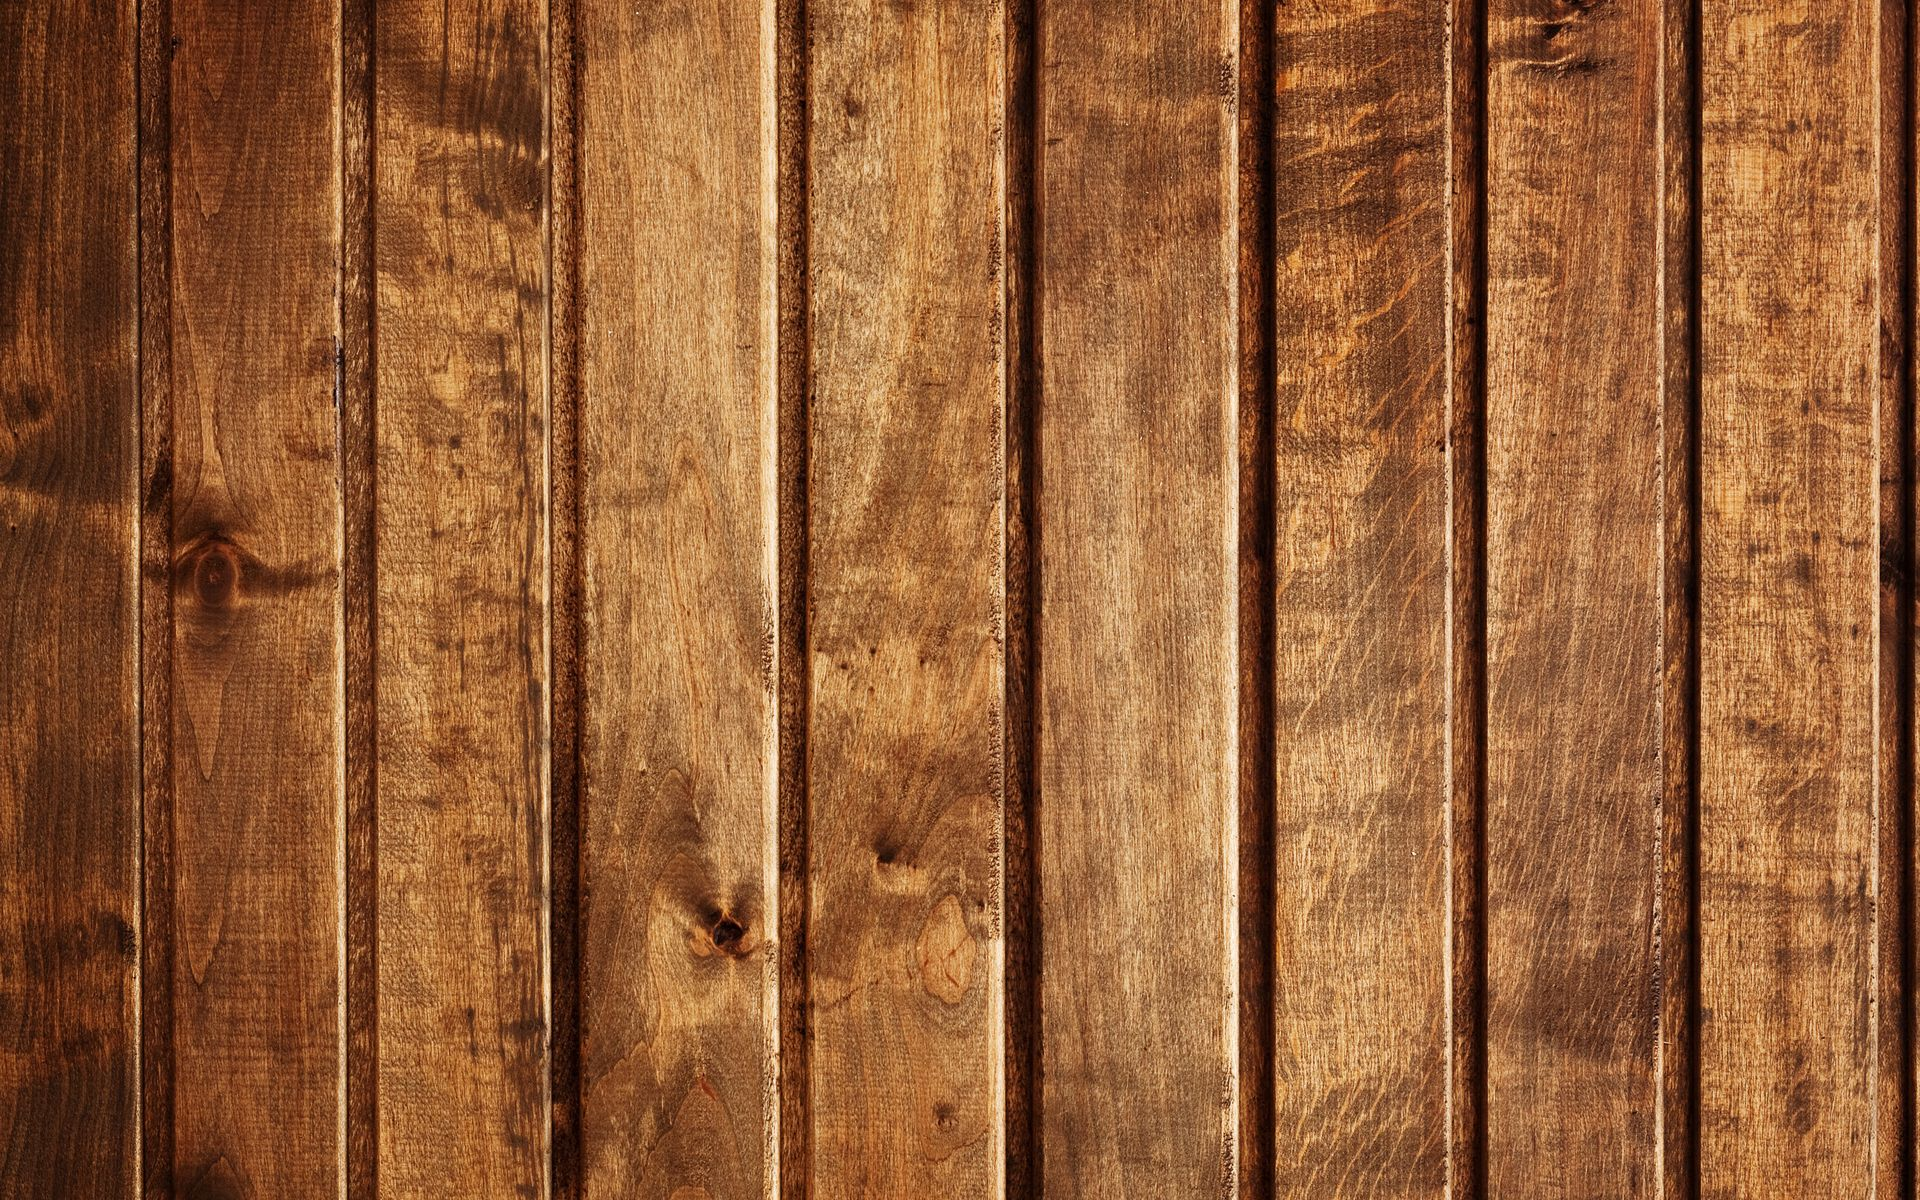 30 amazing free wood texture backgrounds tech lovers l for Wood wallpaper for walls